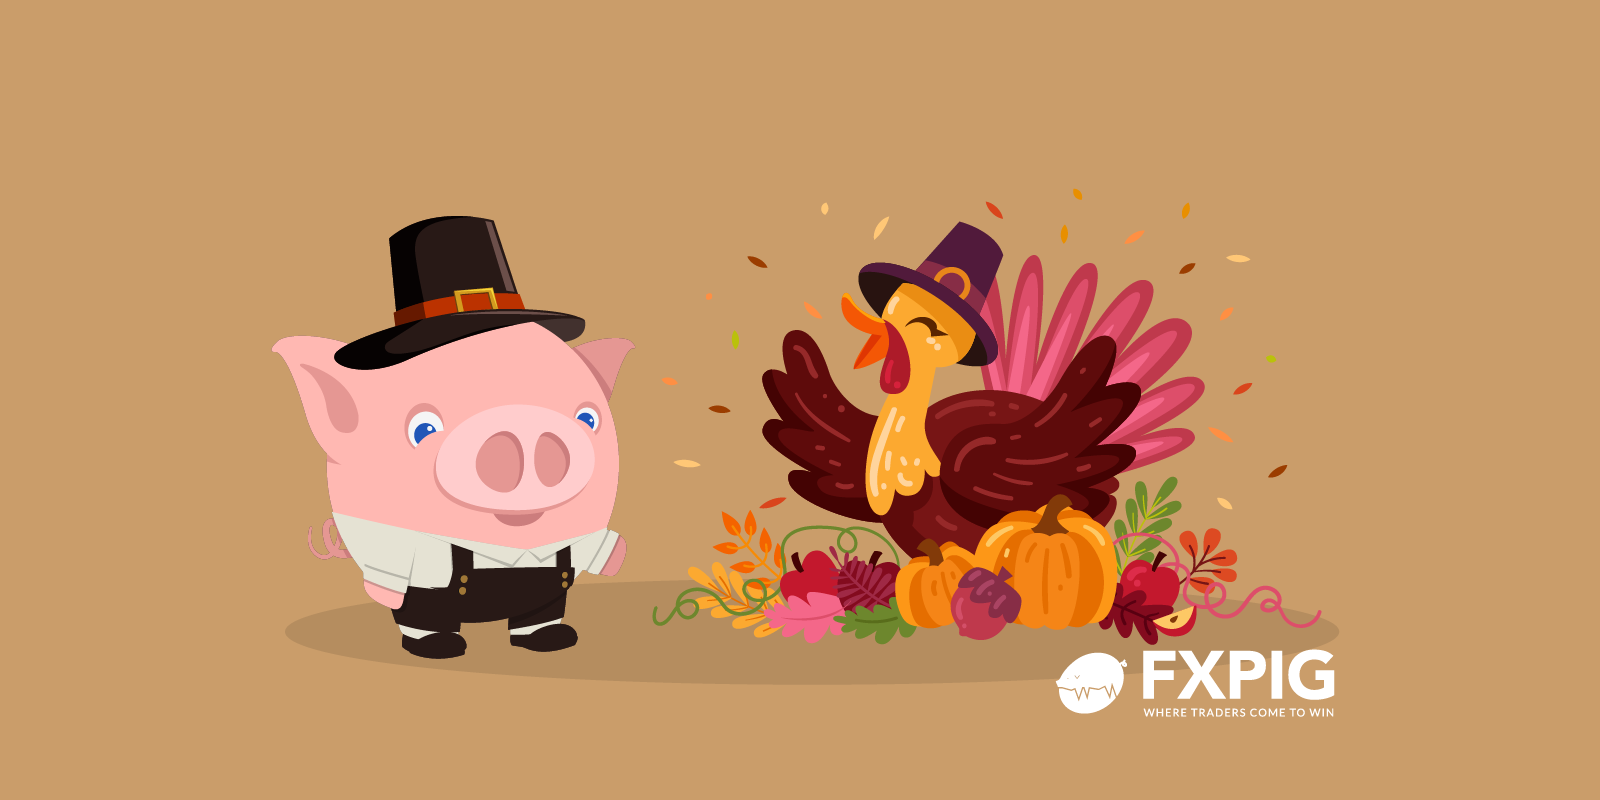 Thanksgiving_trading_hours_Forex_FXPIG_20